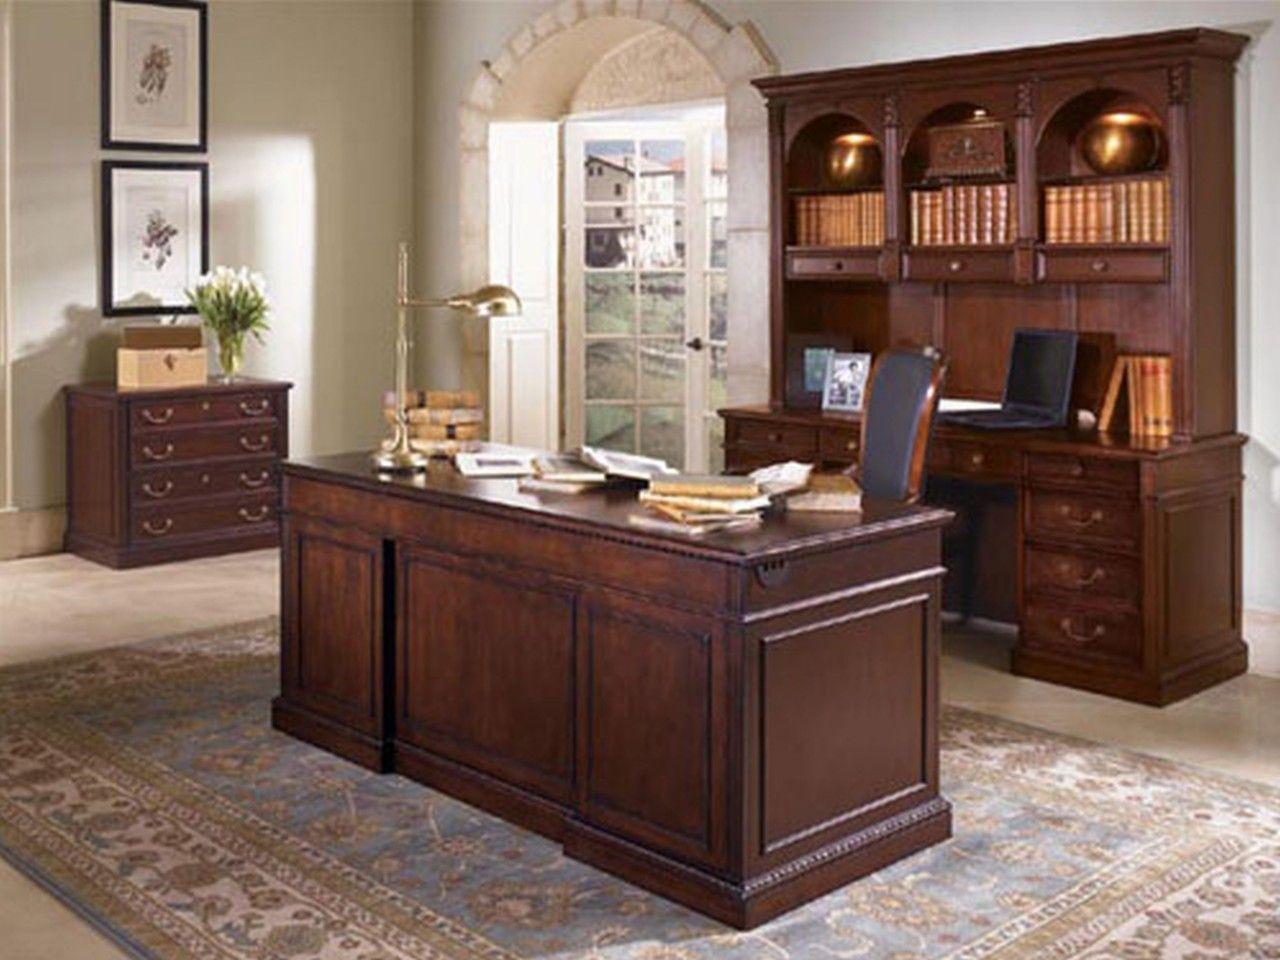 Charming home office furniture ideas scheme heavenly home - Small office setup ideas ...